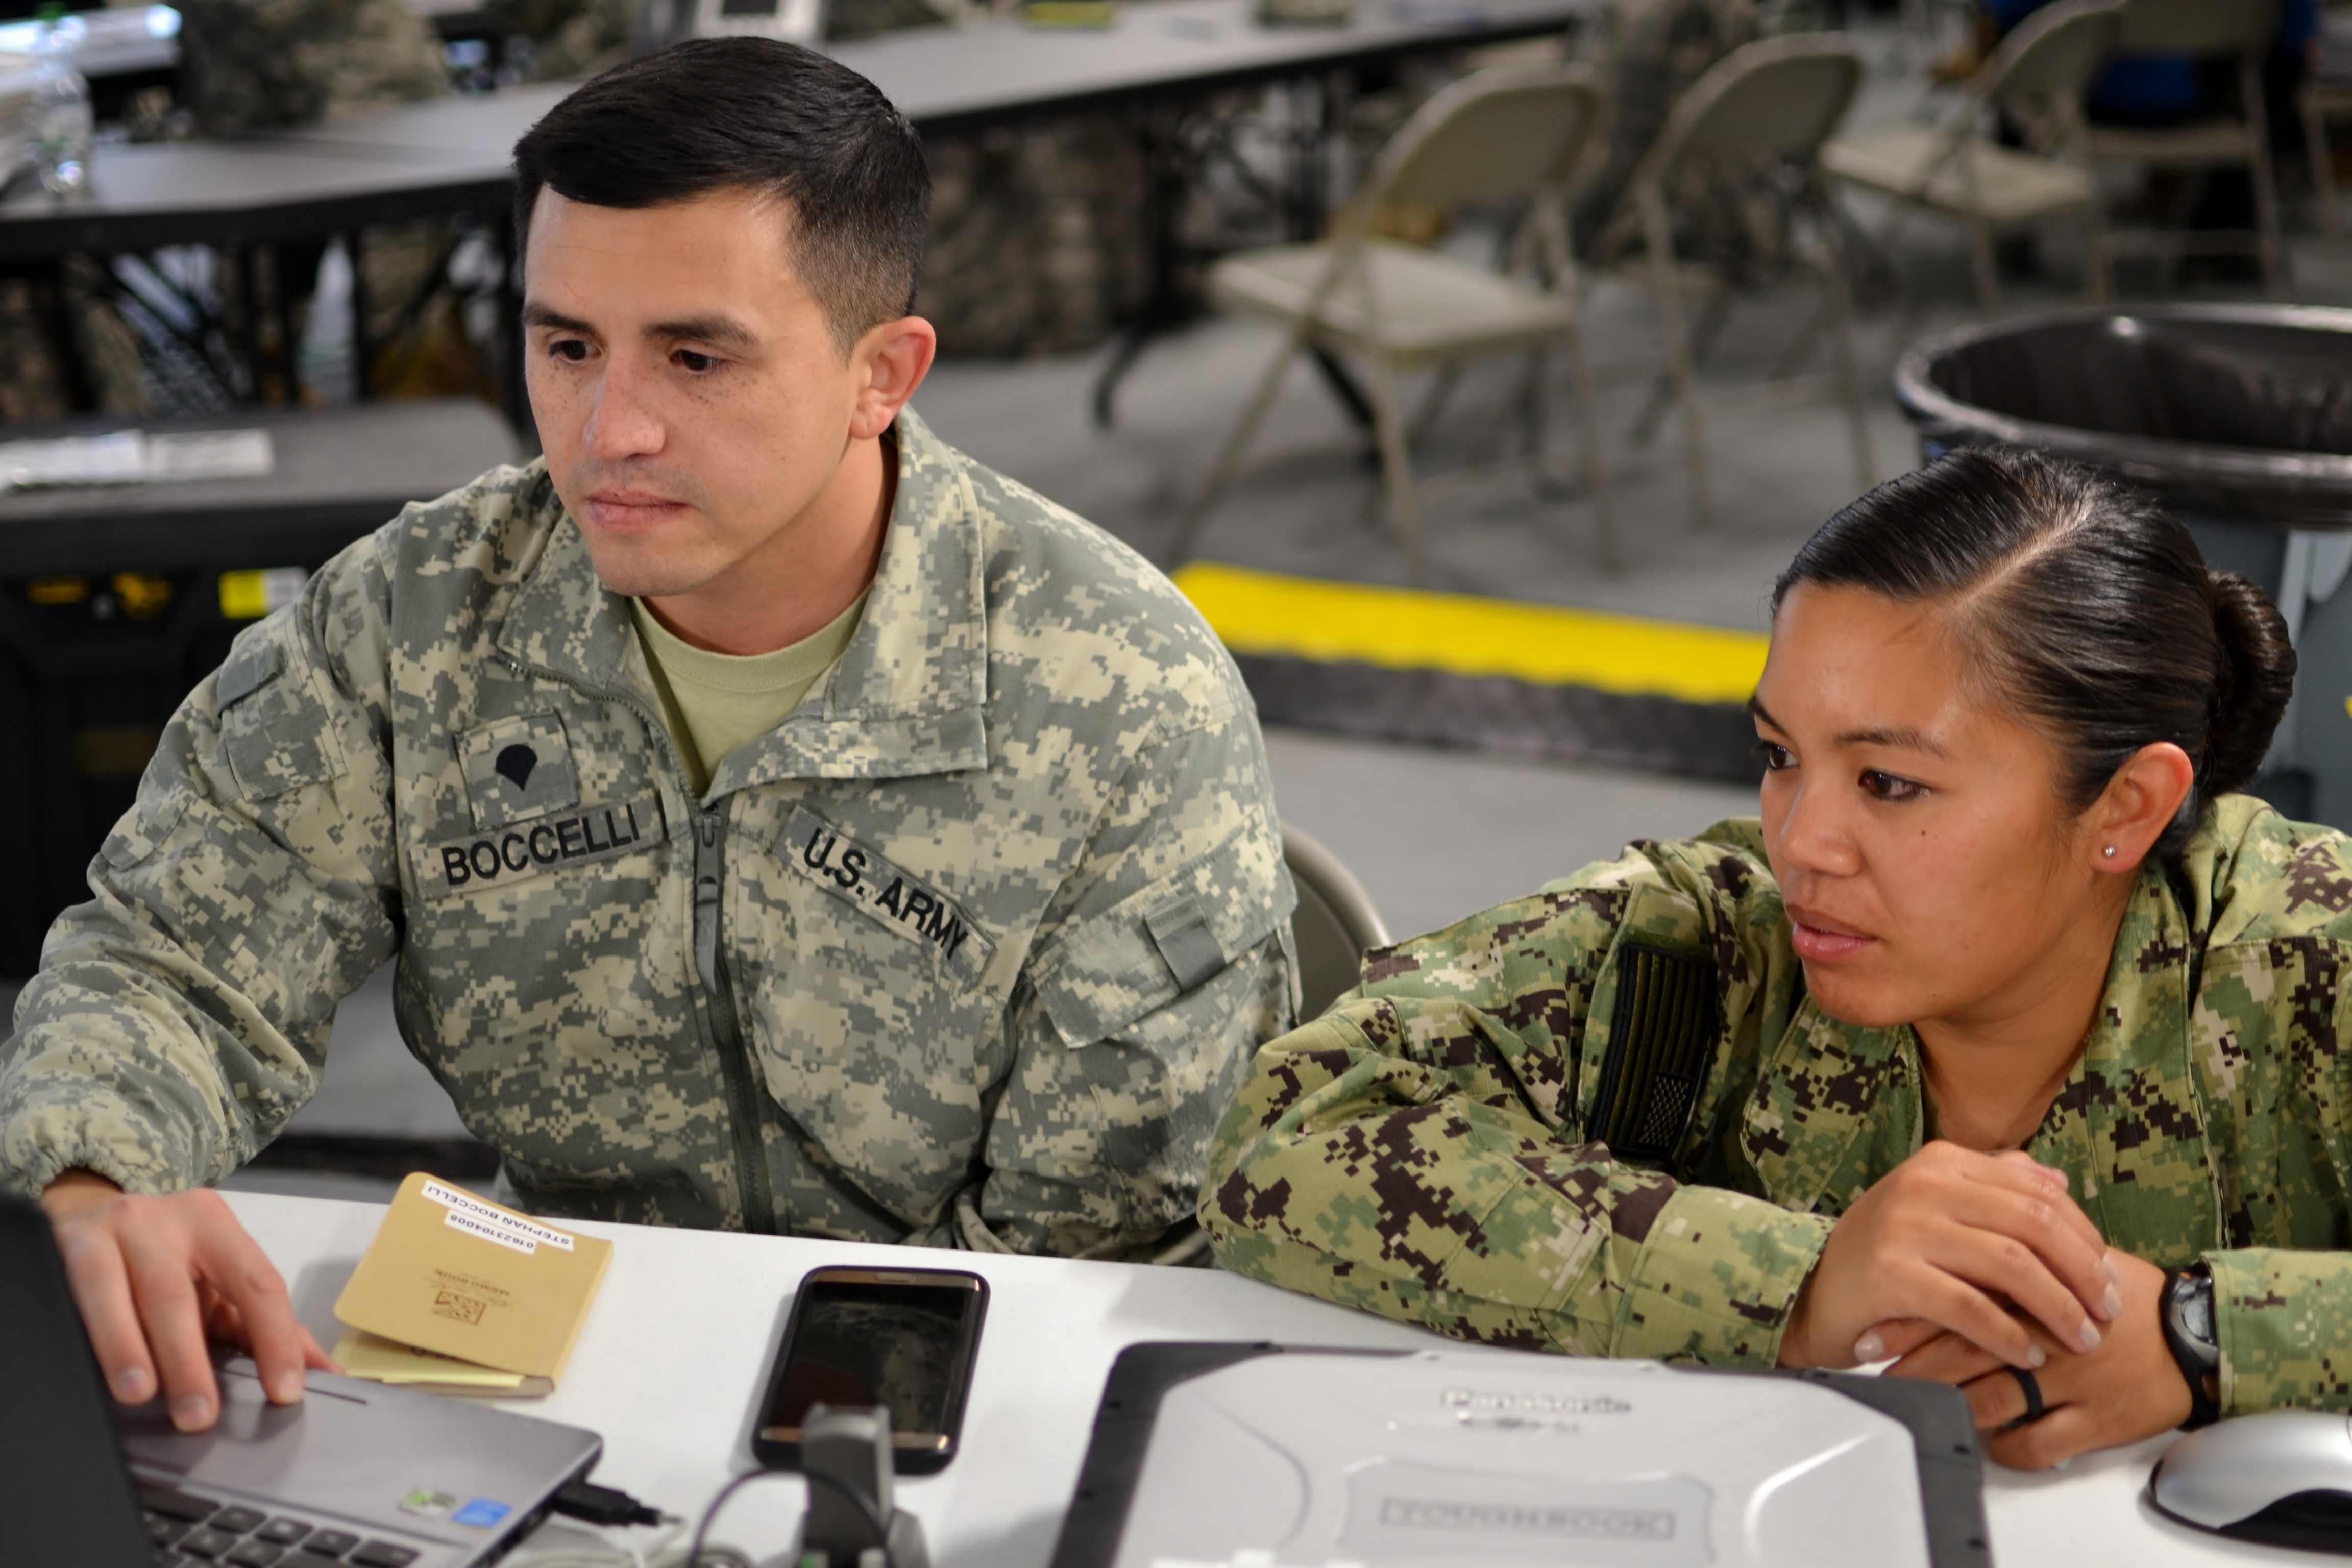 A Soldier and member of the U.S. Navy work on communication processes while setting up for exercise Anakonda Response 2016 on Papa Air Base, Hungary, April 27, 2016. This exercise will be implementing the Perspective Integration method during the mission, which requires mission planners to account for cultural factors in how gender roles affect men, women, boys and girls differently in a disaster. (U.S. Air National Guard photo by Tech. Sgt. Andria Allmond)